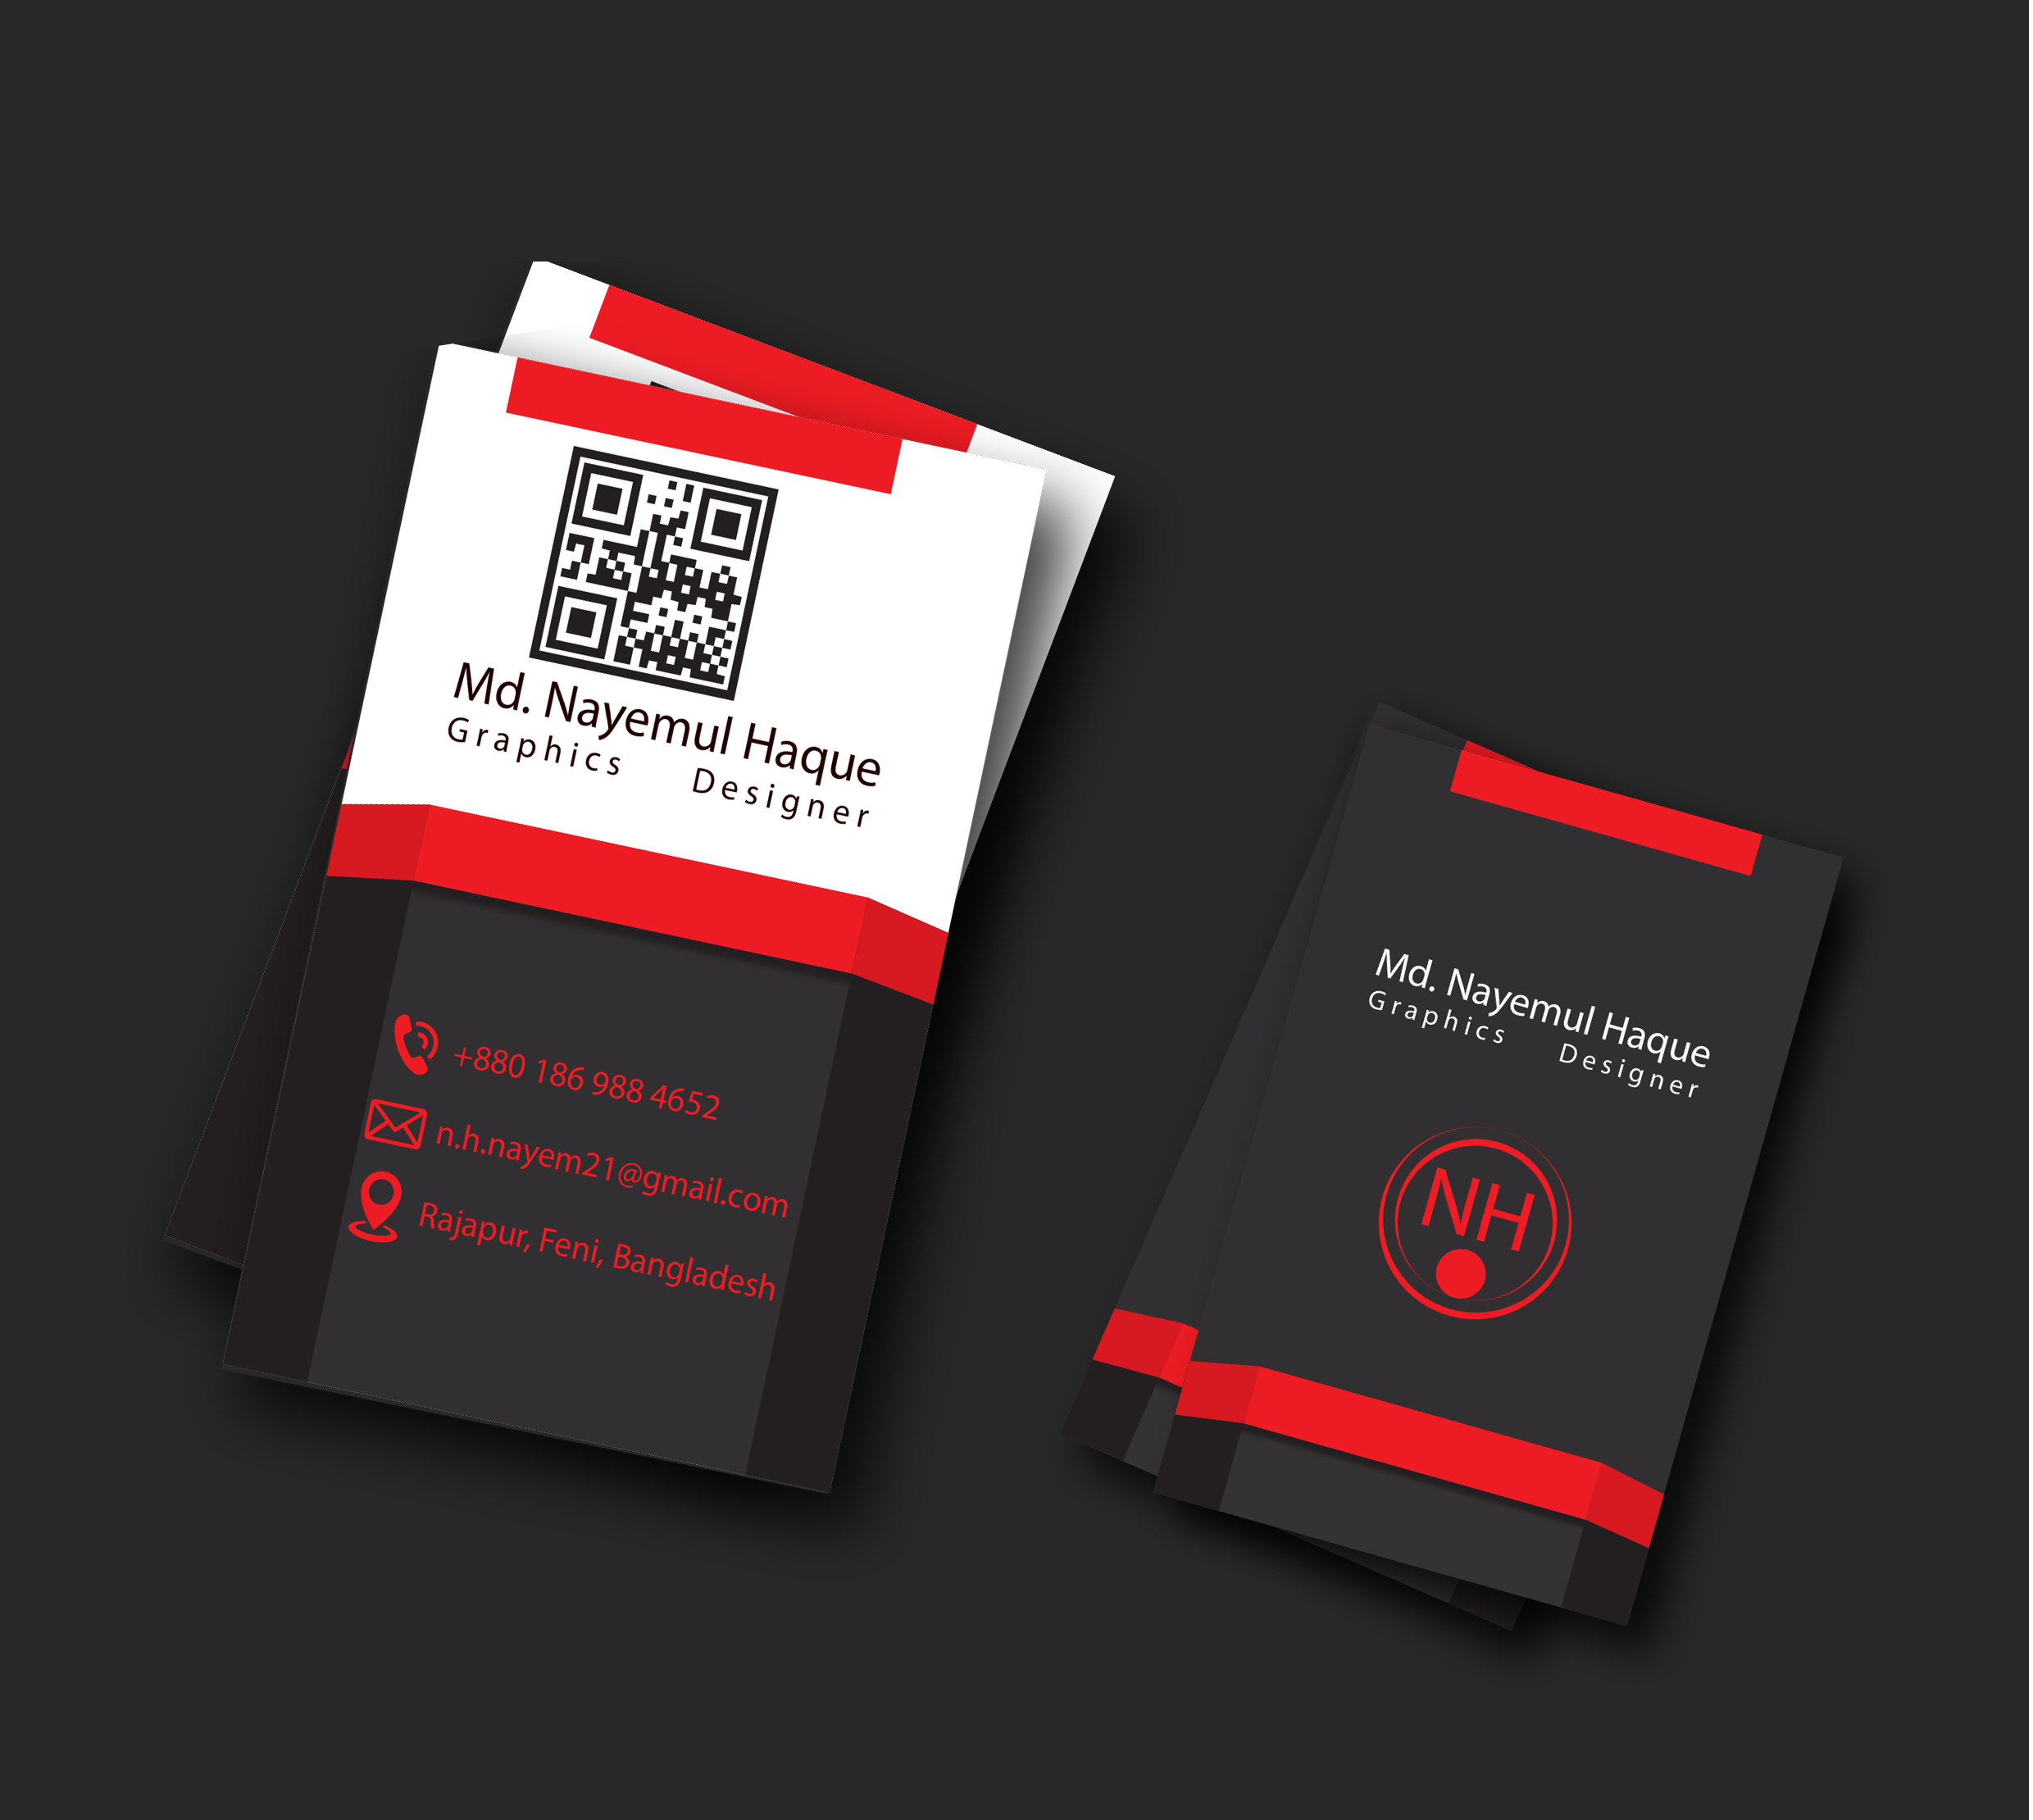 I will design business cards letterhead and stationary items